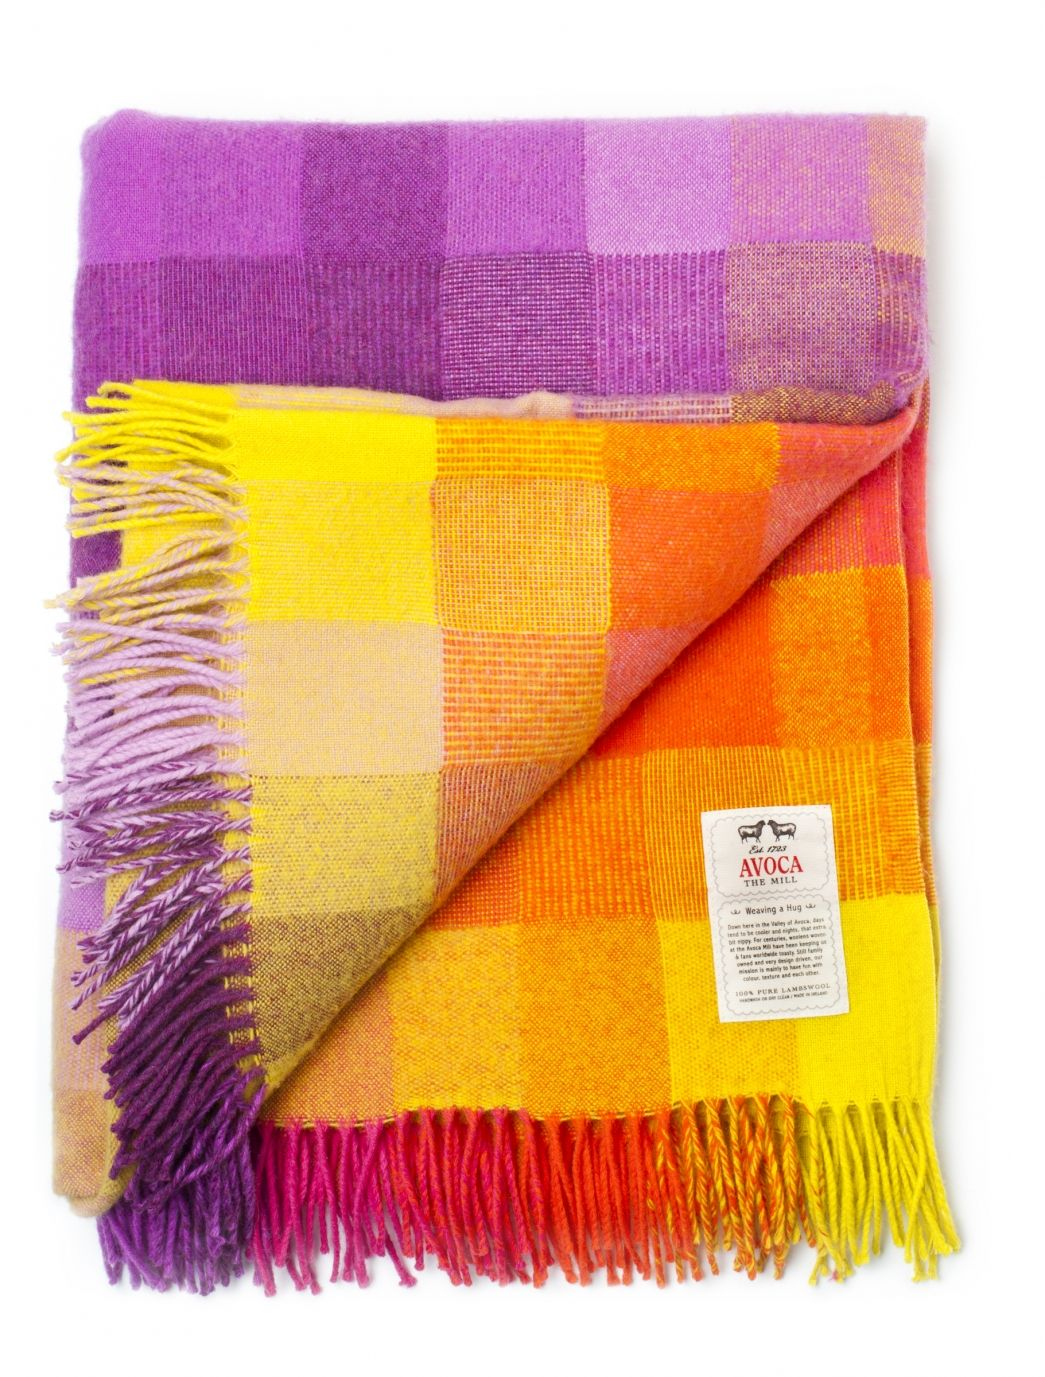 Choose a colorful Irish Lambswool Throw from Avoca. Original design woven with care to create a cosy bed or sofa throw for any home.  A Unique Gift For Home, Gift For Him, Gift For Her.  Avoca.com